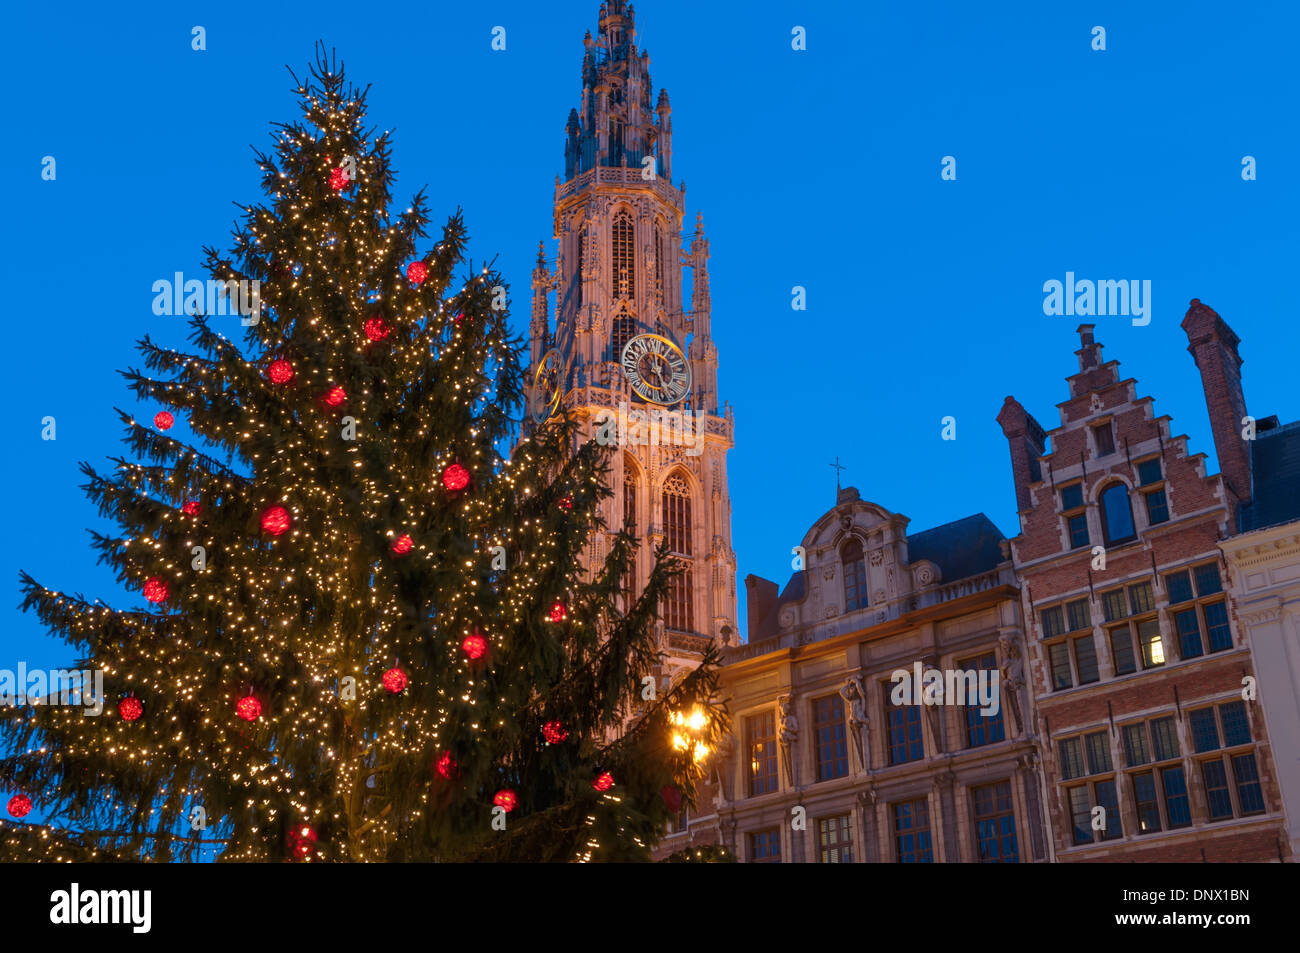 Xmas tree and cathedral spire, Christmas Market, Grote Markt, Antwerp Belgium - Stock Image